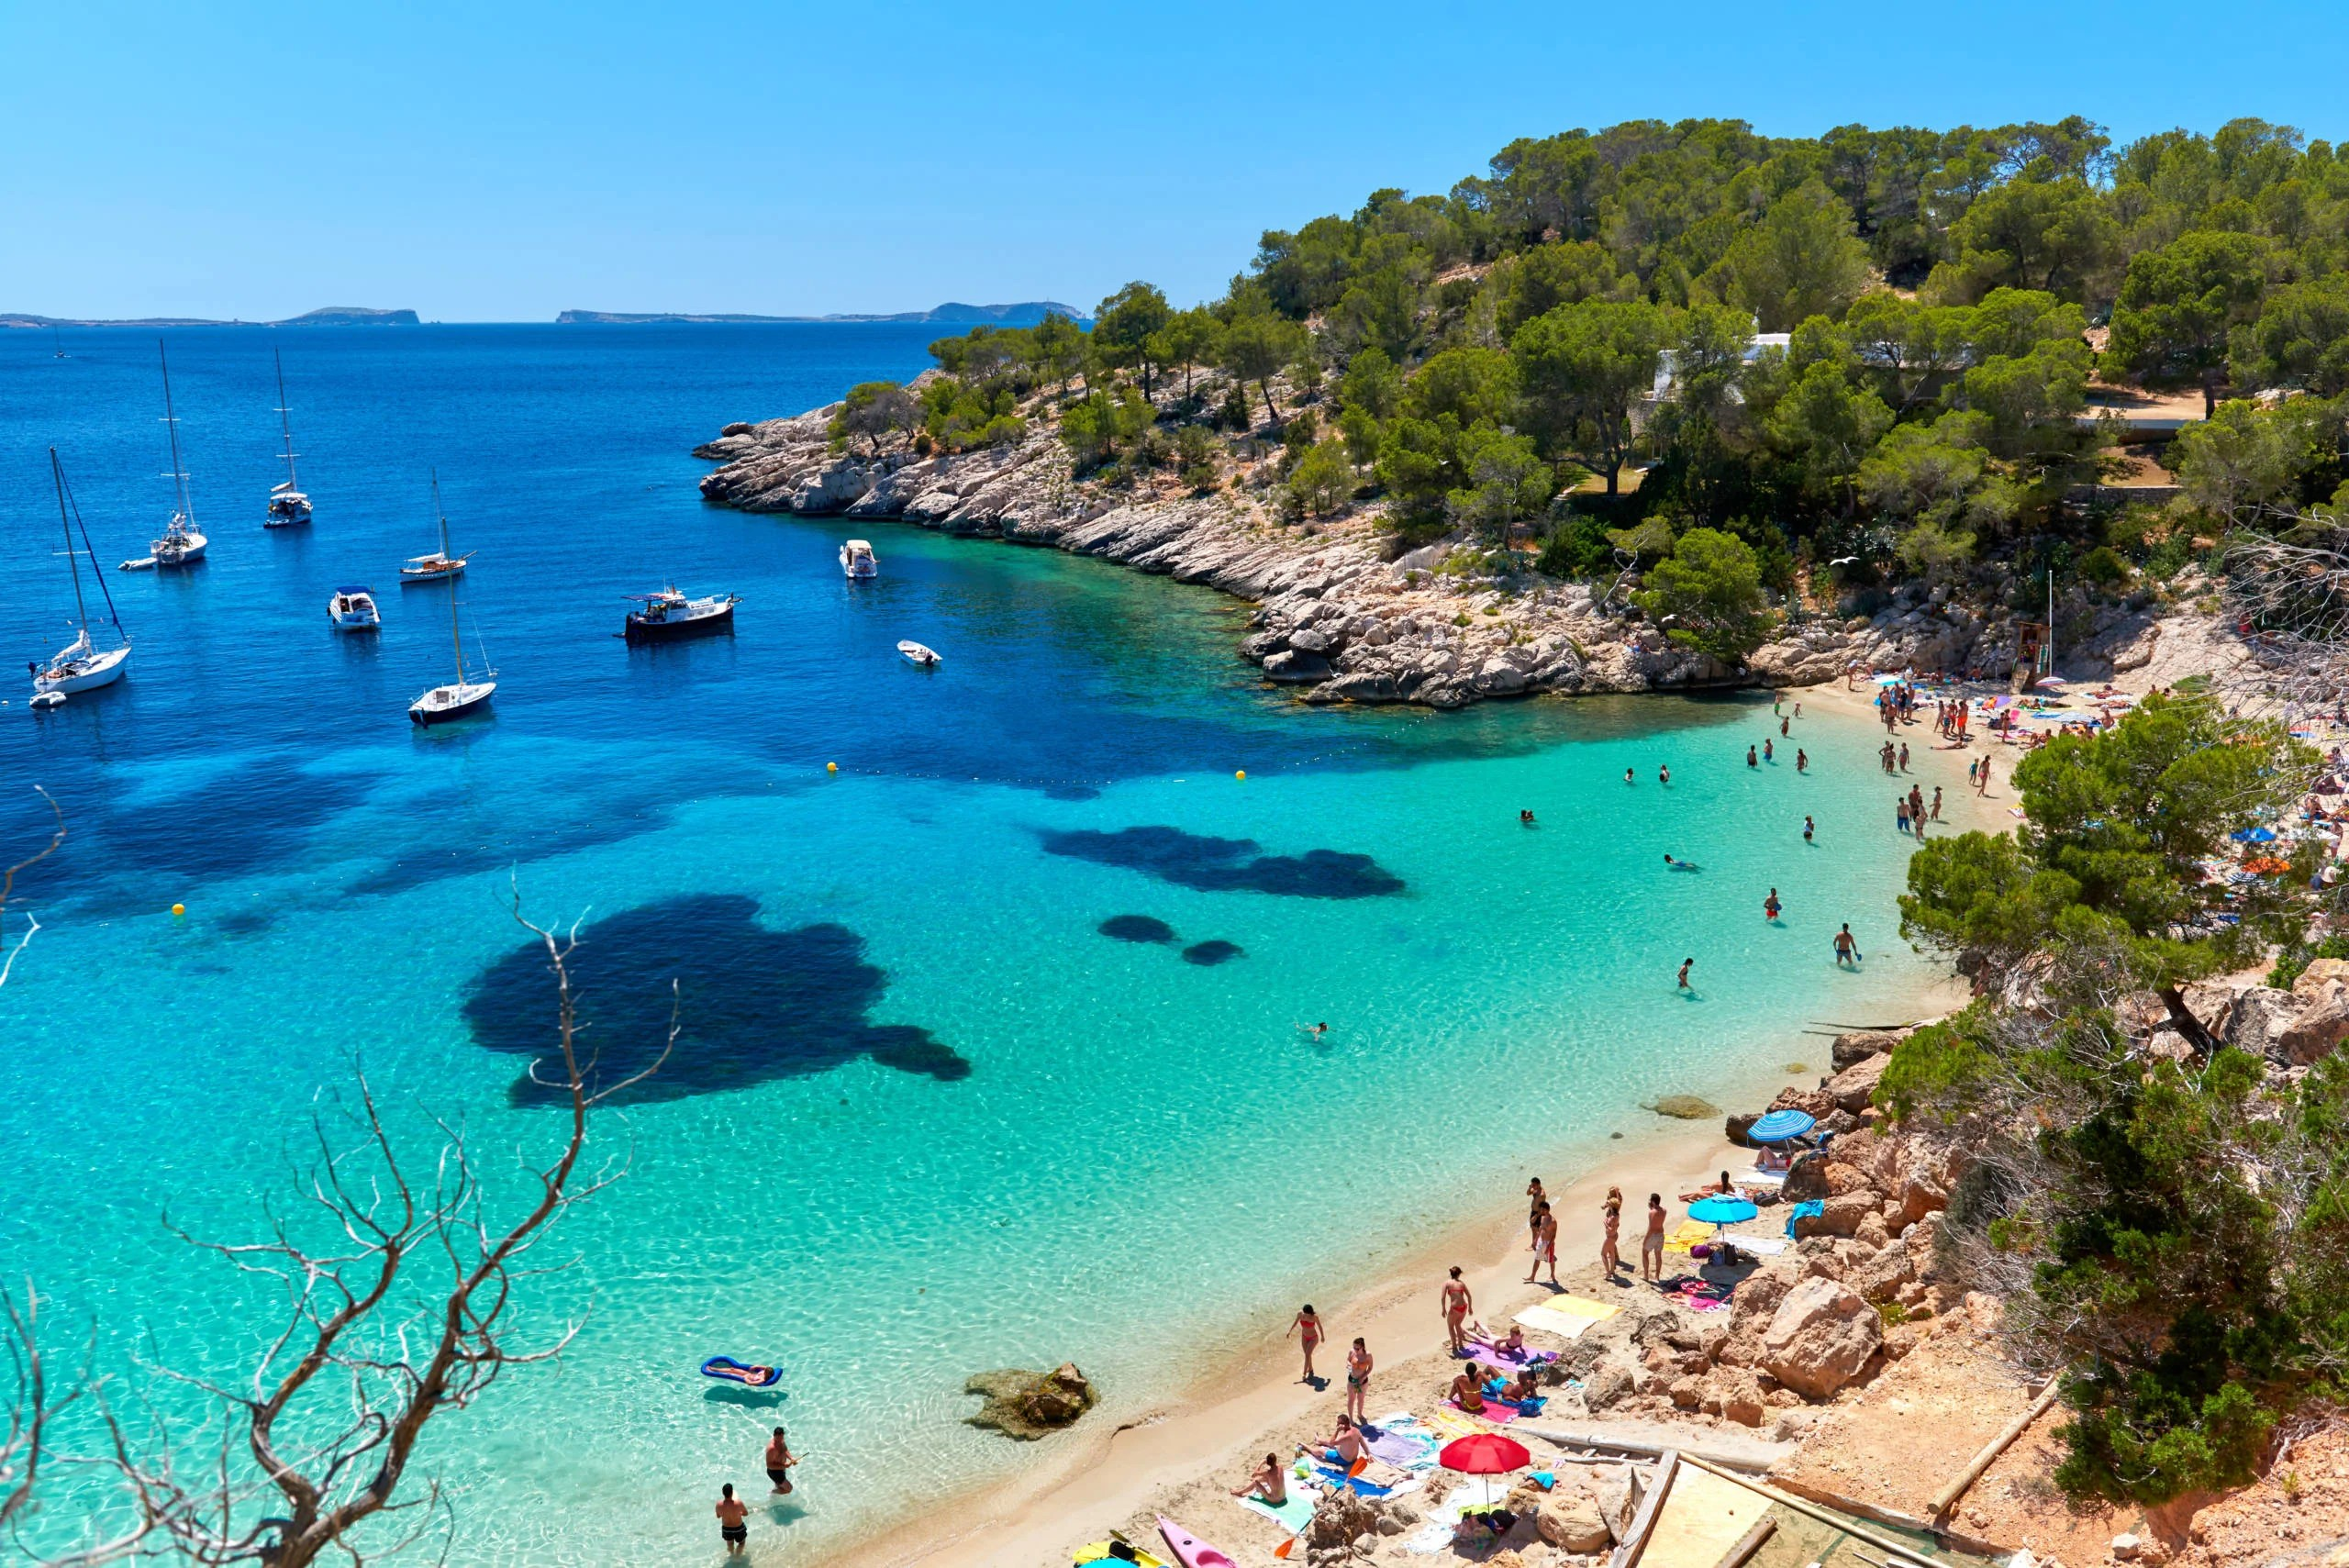 Mallorca and Ibiza are cracking down on pub crawls, happy hour and party boats